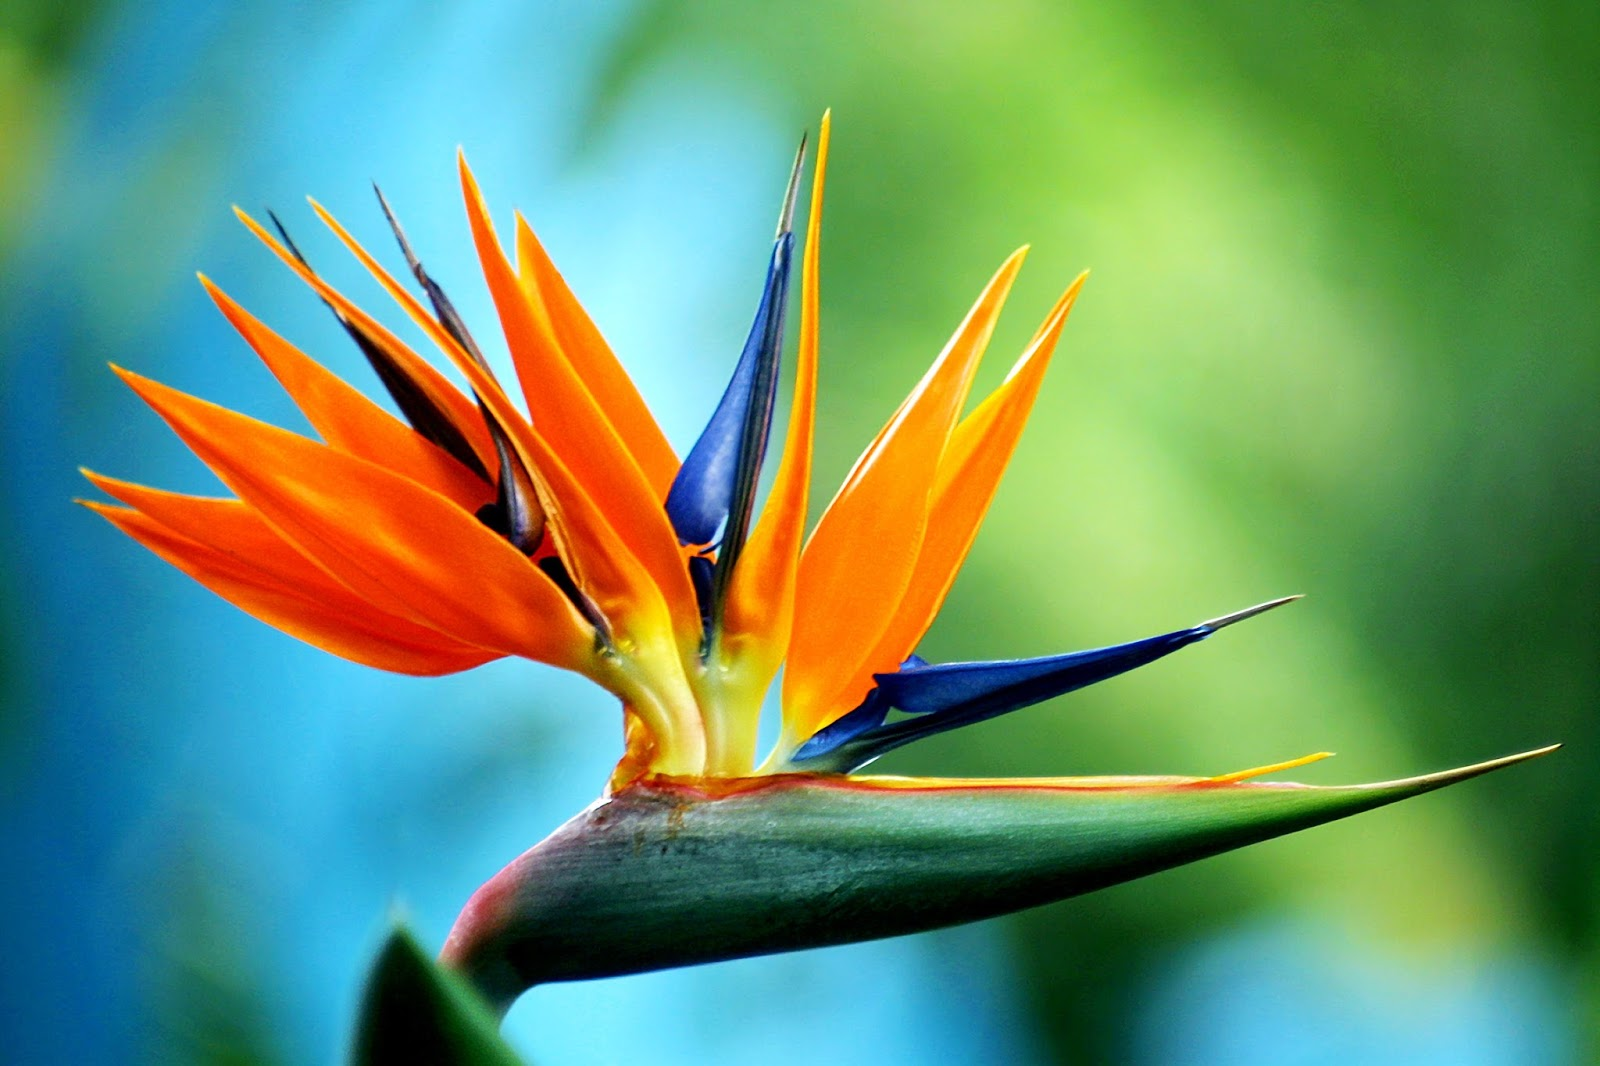 Top 10 most beautiful flowers in the world toptenlist the birds of paradise are members of the family paradisaeidae of the order passeriformes the majority of species are found in eastern indonesia izmirmasajfo Image collections